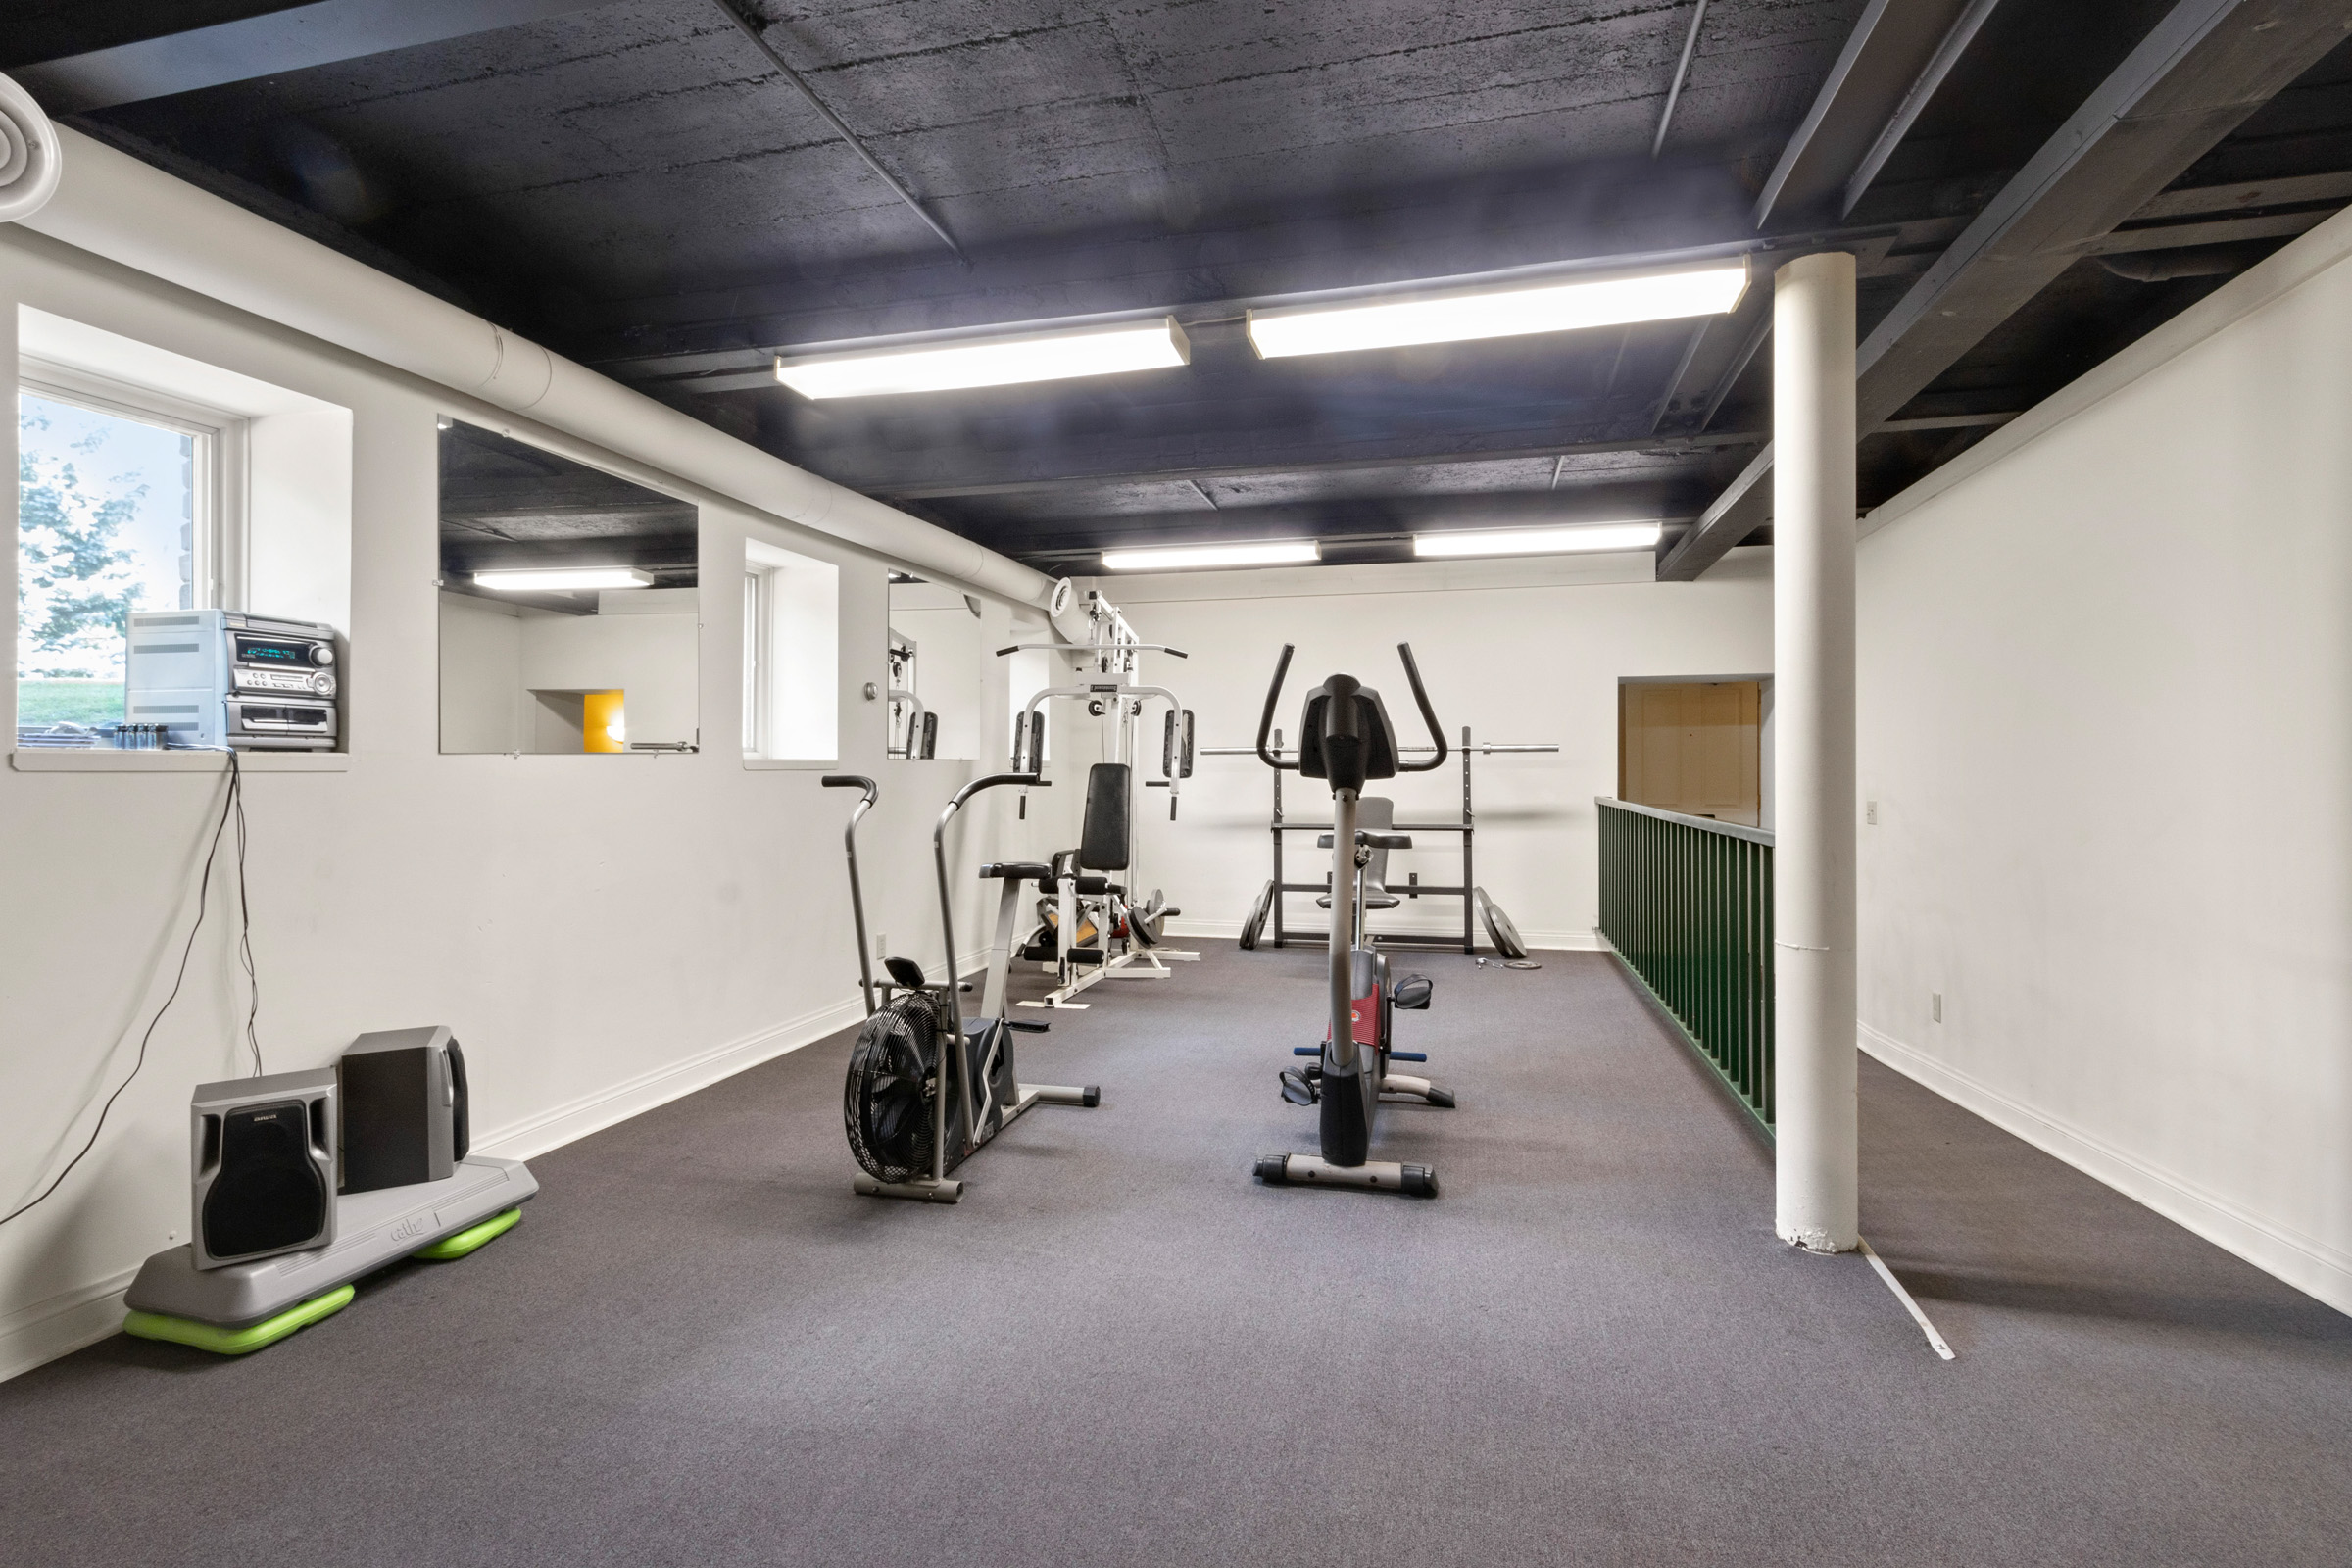 Common Area Work Out equipment